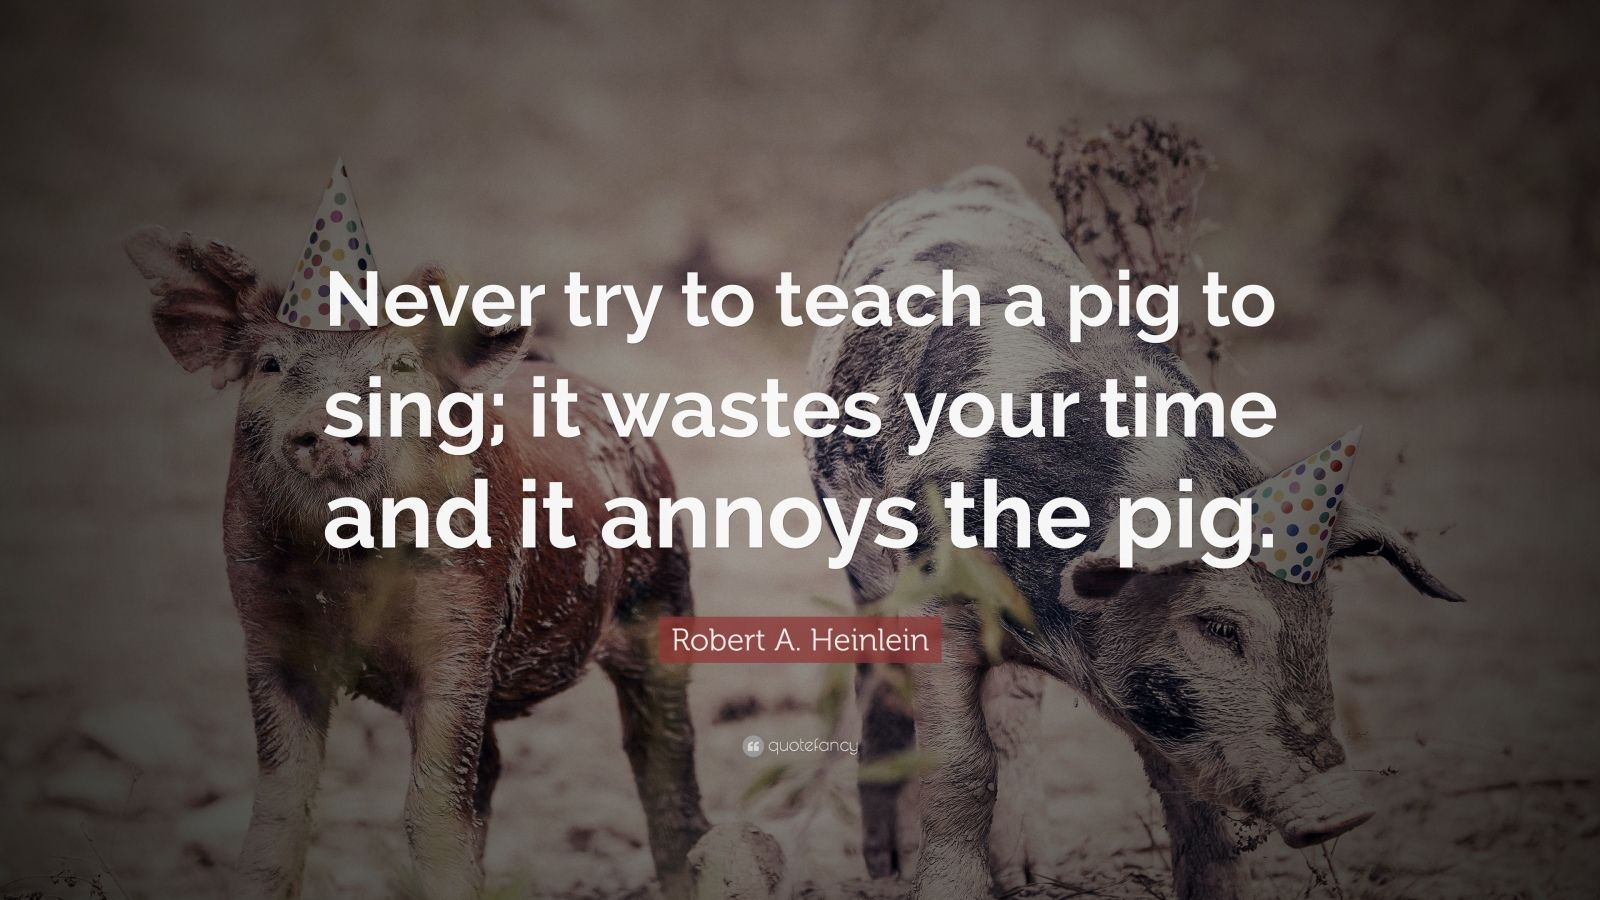 Funny Quotes  26 wallpapers    Quotefancy Funny Quotes     Never try to teach a pig to sing  it wastes your